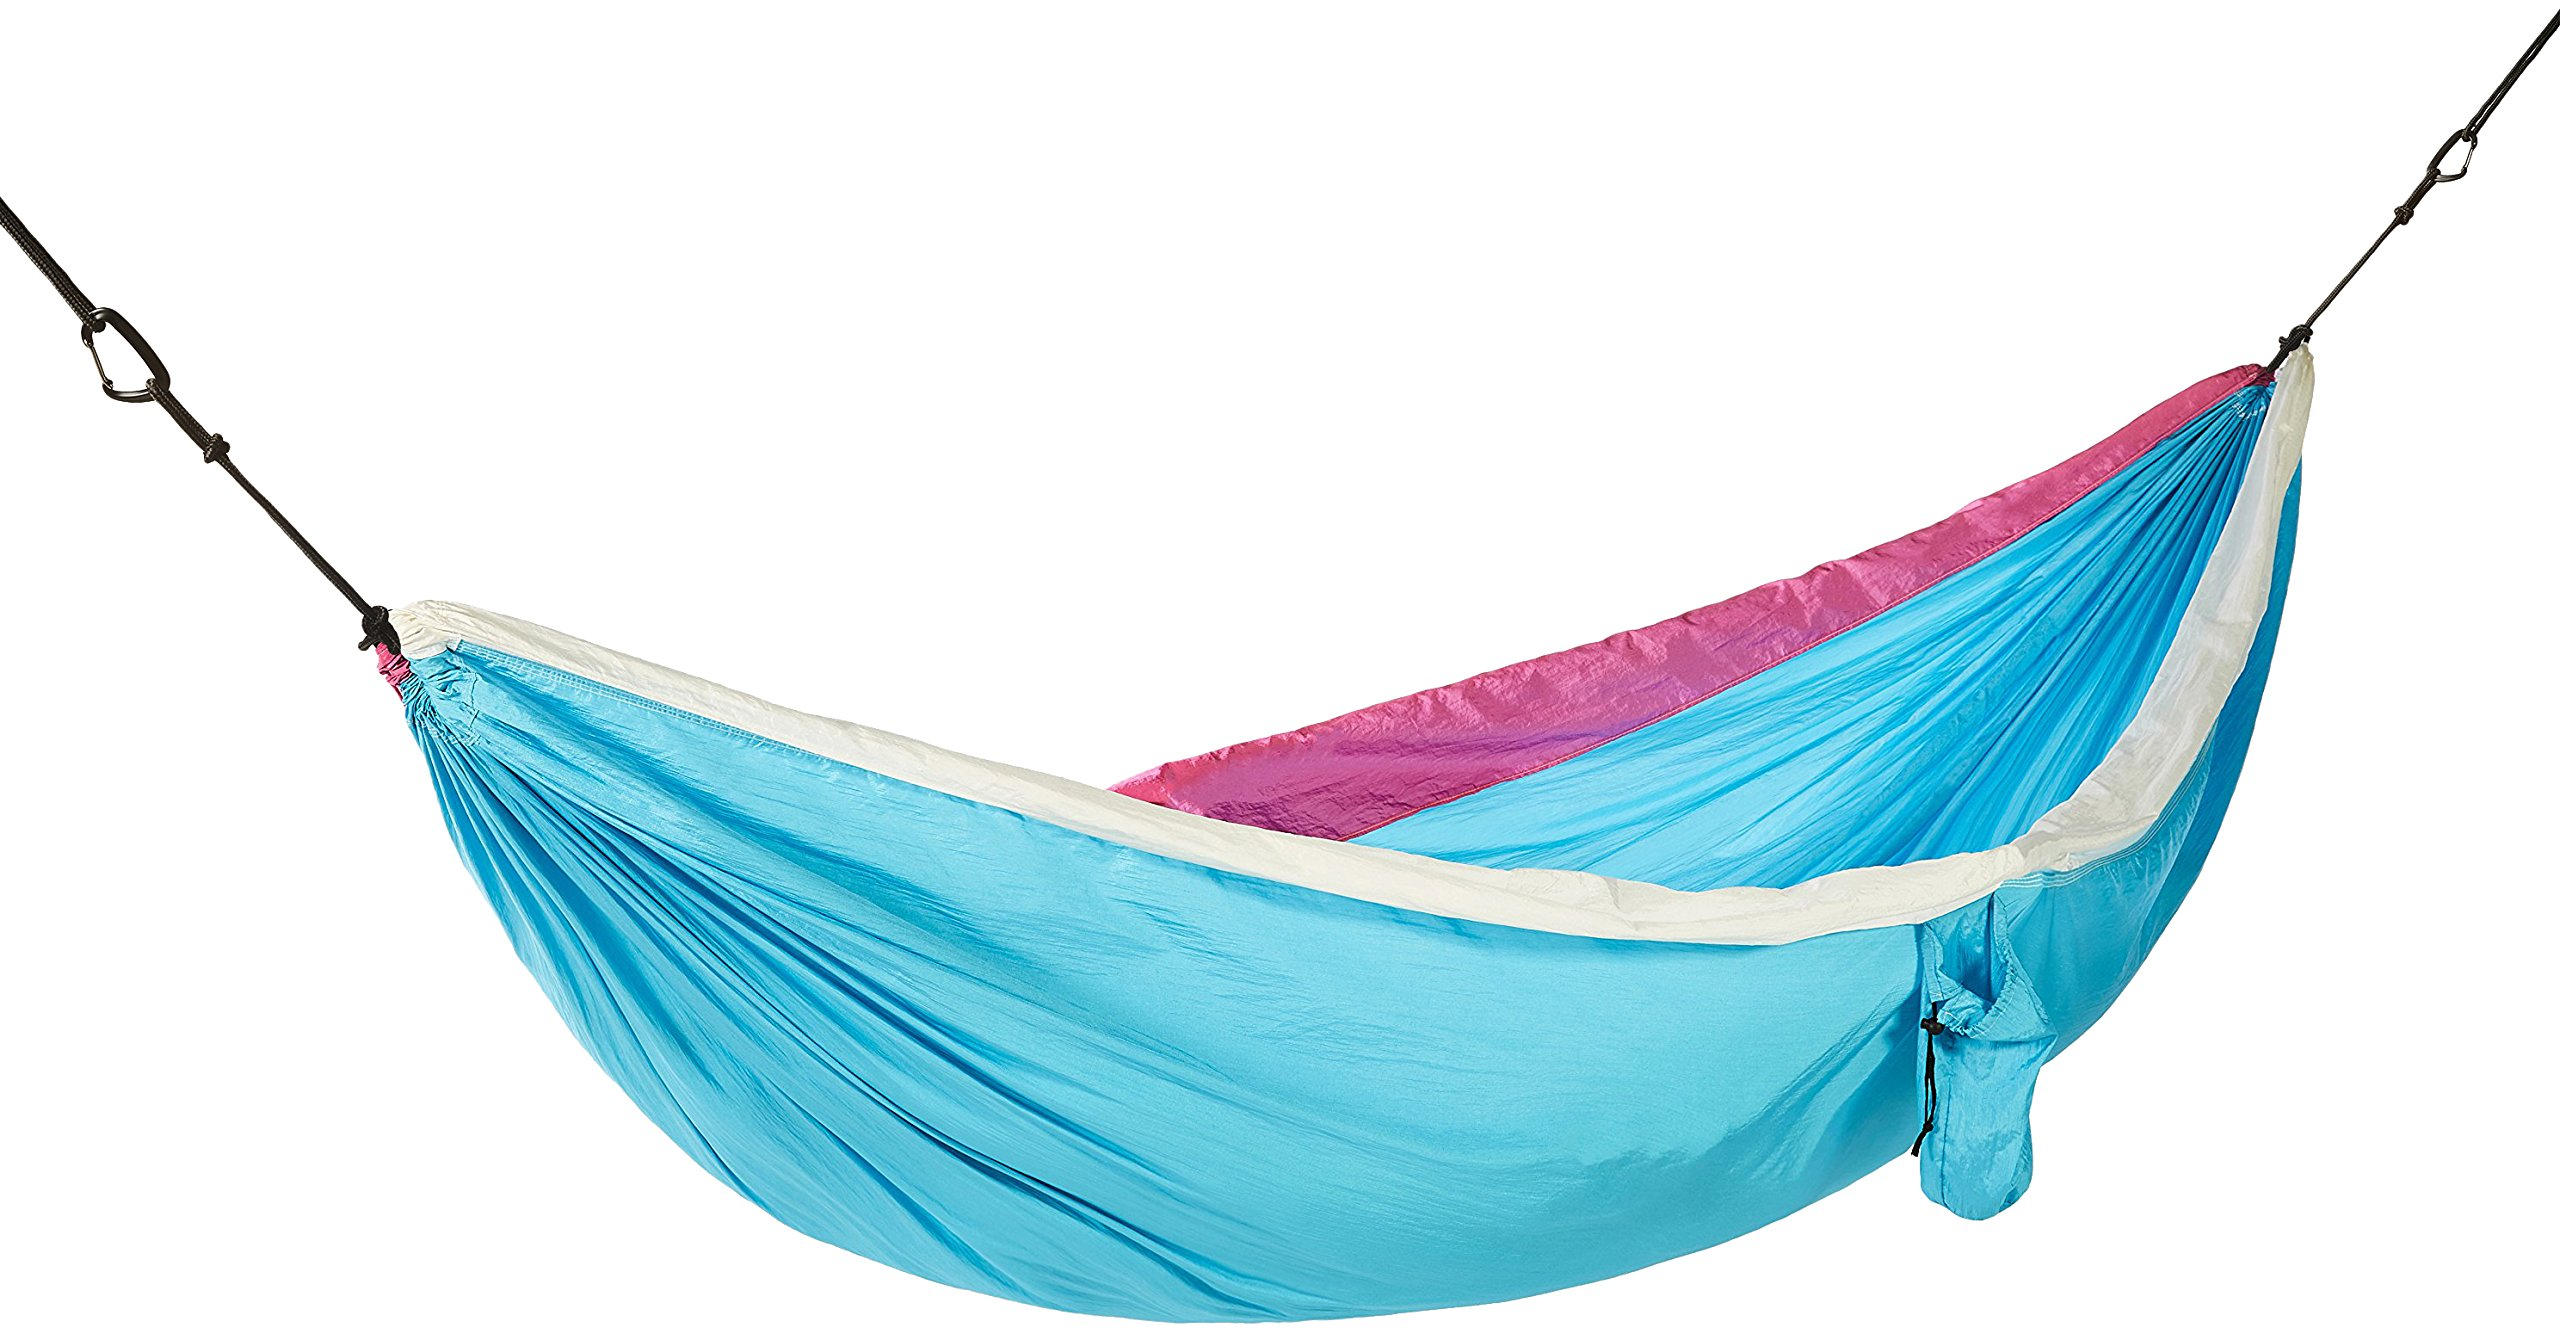 Lightweight Double Camping Hammock With Stuff Sack, Carabiners And Rope - 9 x 7 Feet, Sky Blue And White